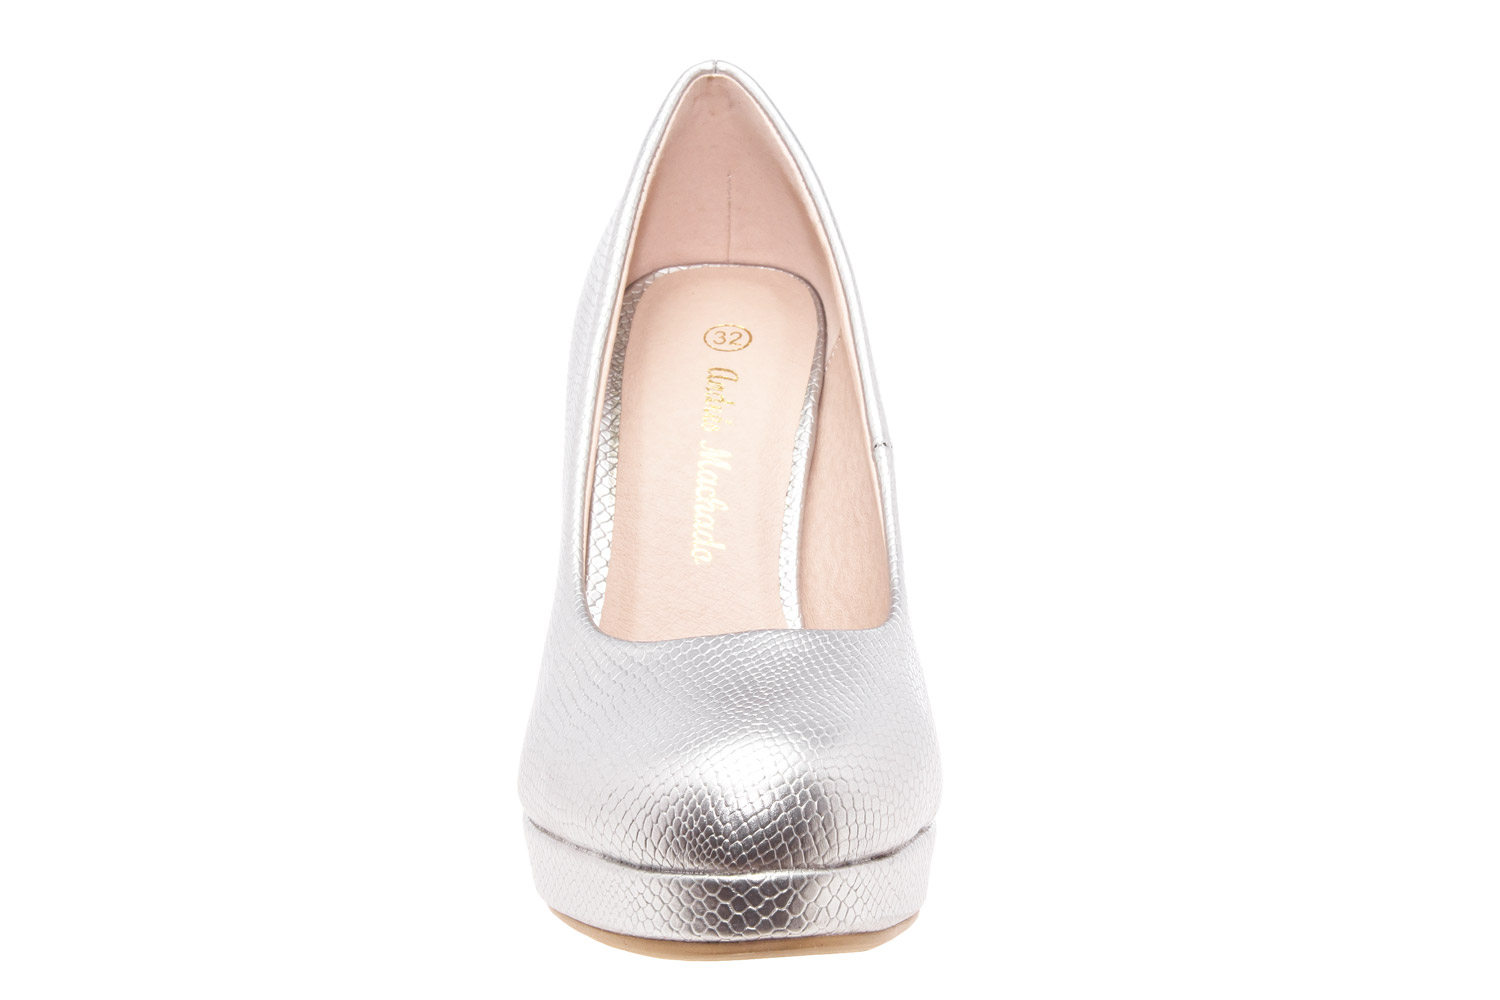 Salones Pumps en Grabado Plata y Tacon Stiletto